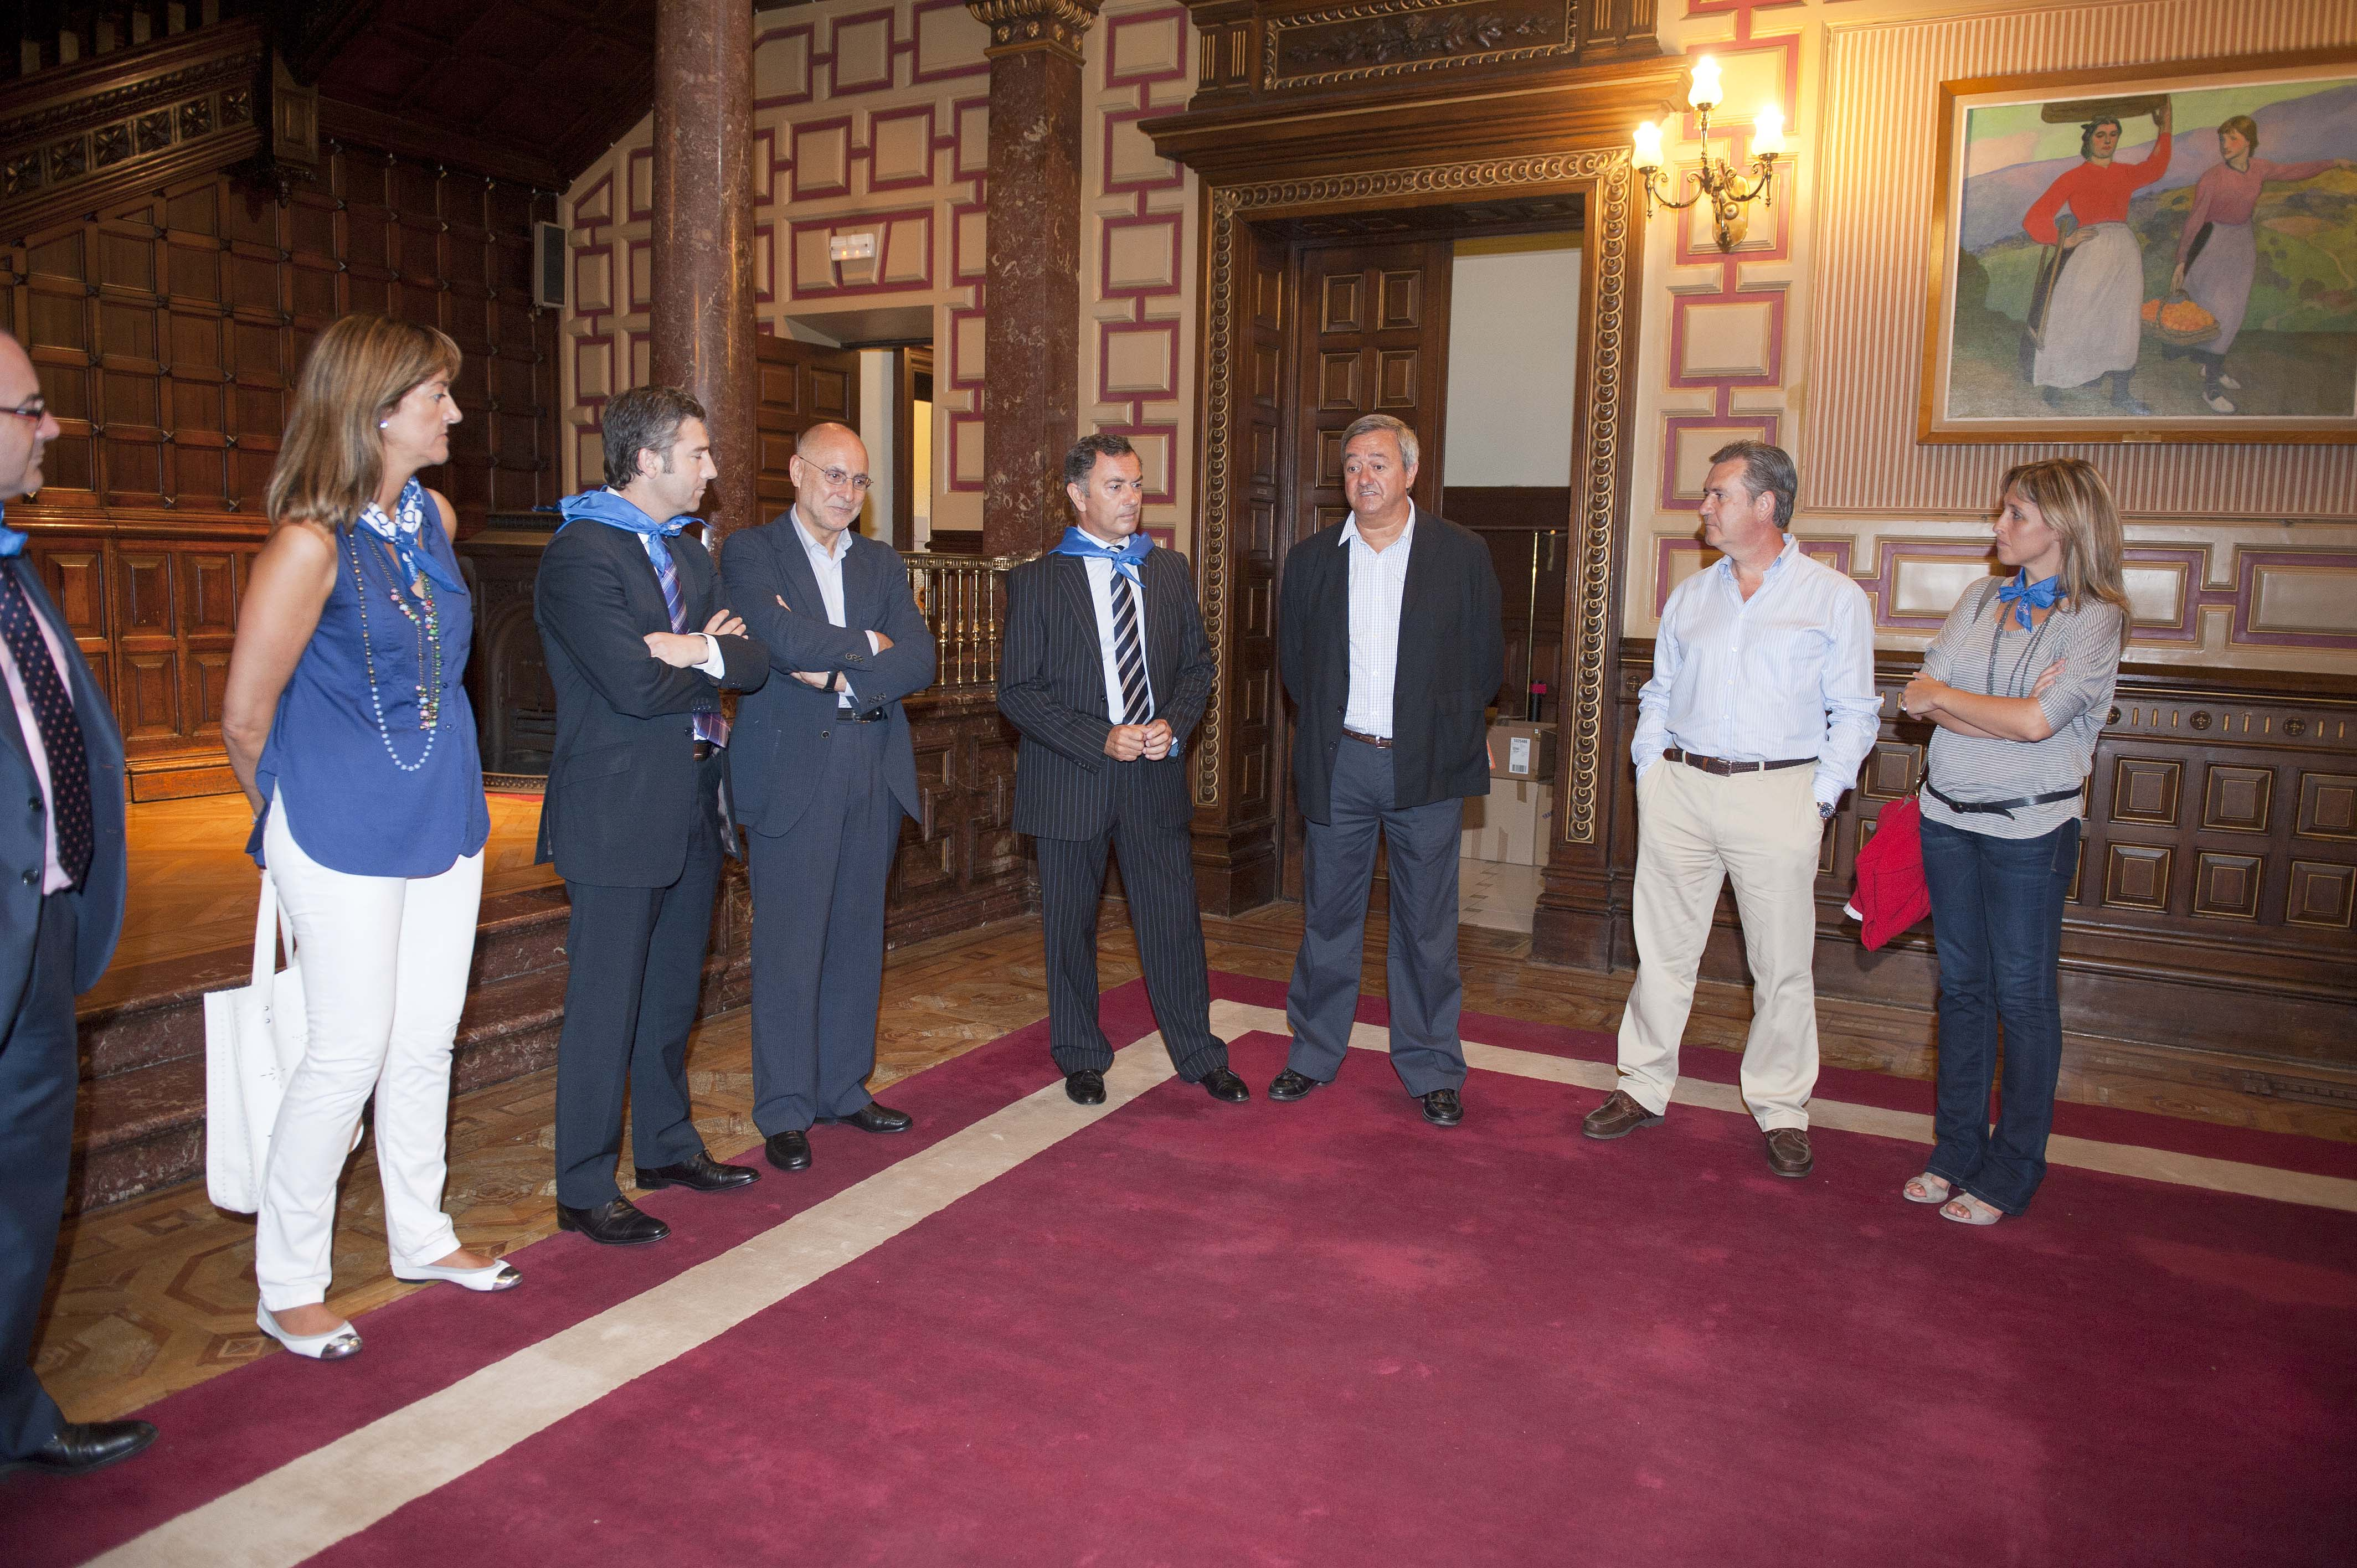 2011_08_22_athletic_recepcion_ibaigane_gobierno.jpg